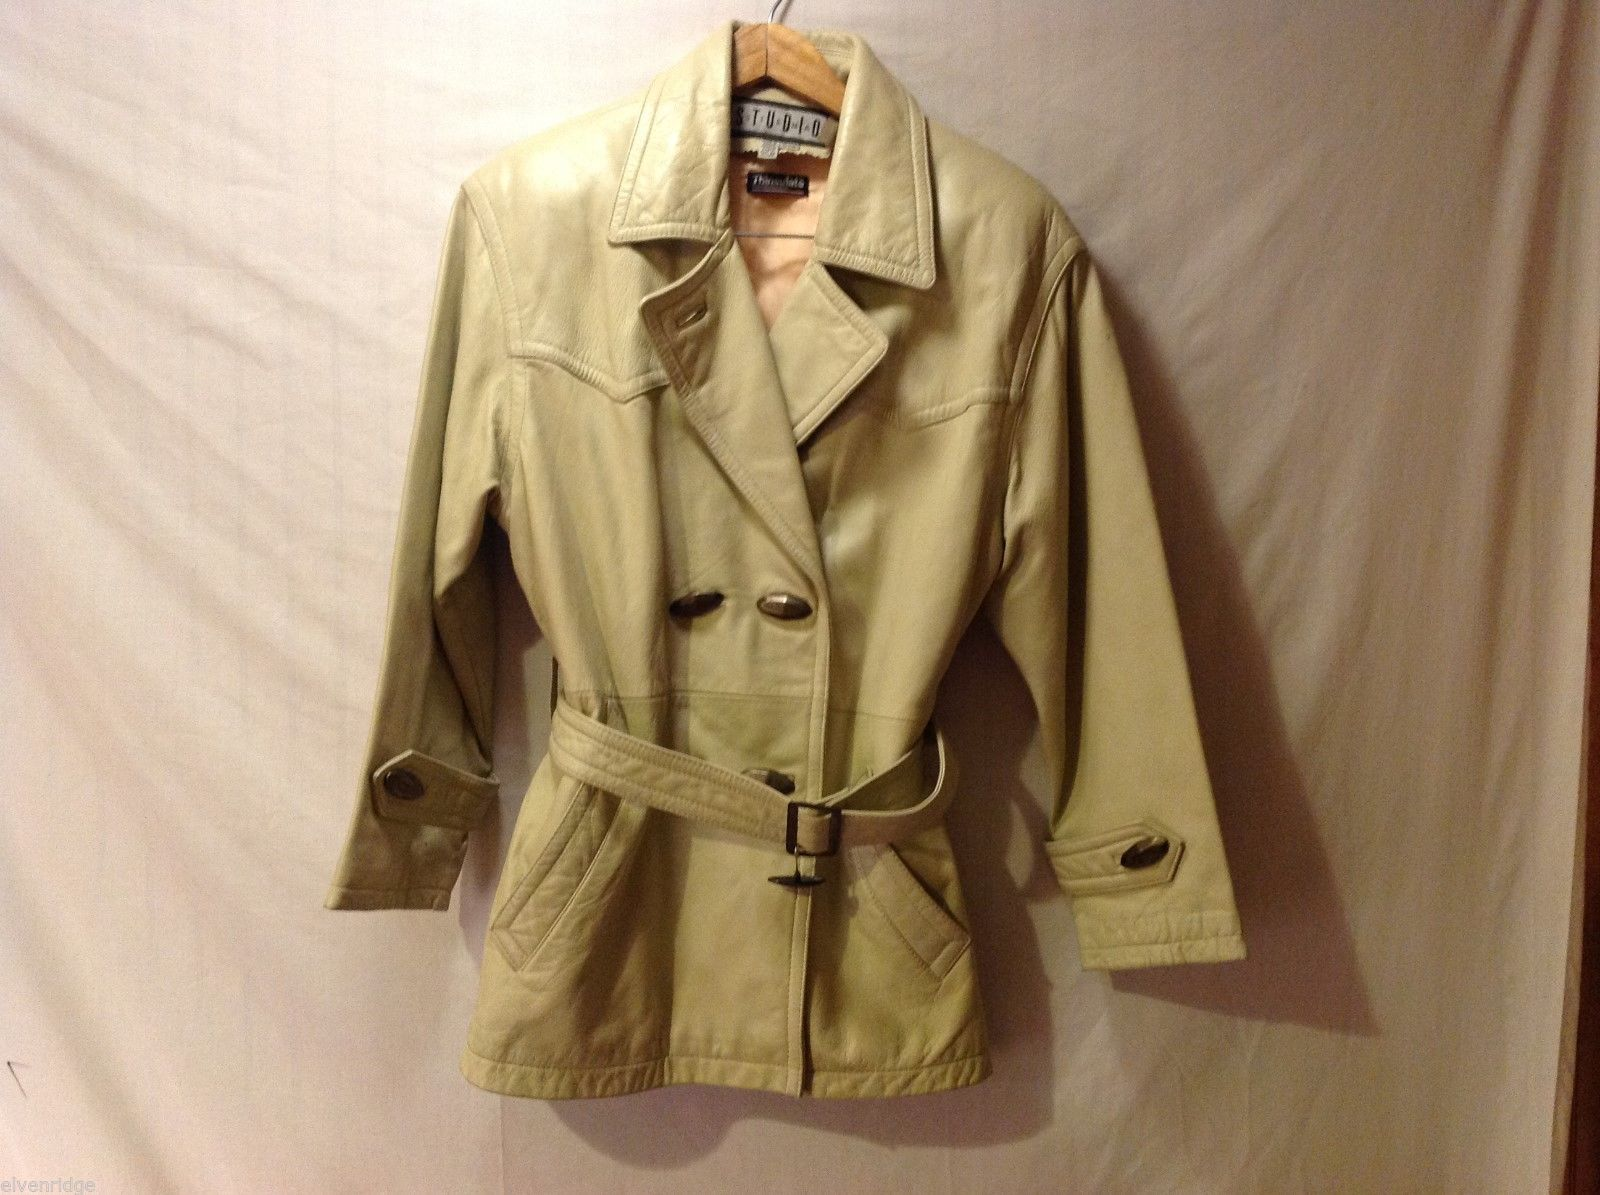 Studio Siena Womens Cream Colored Leather Coat, Size Small